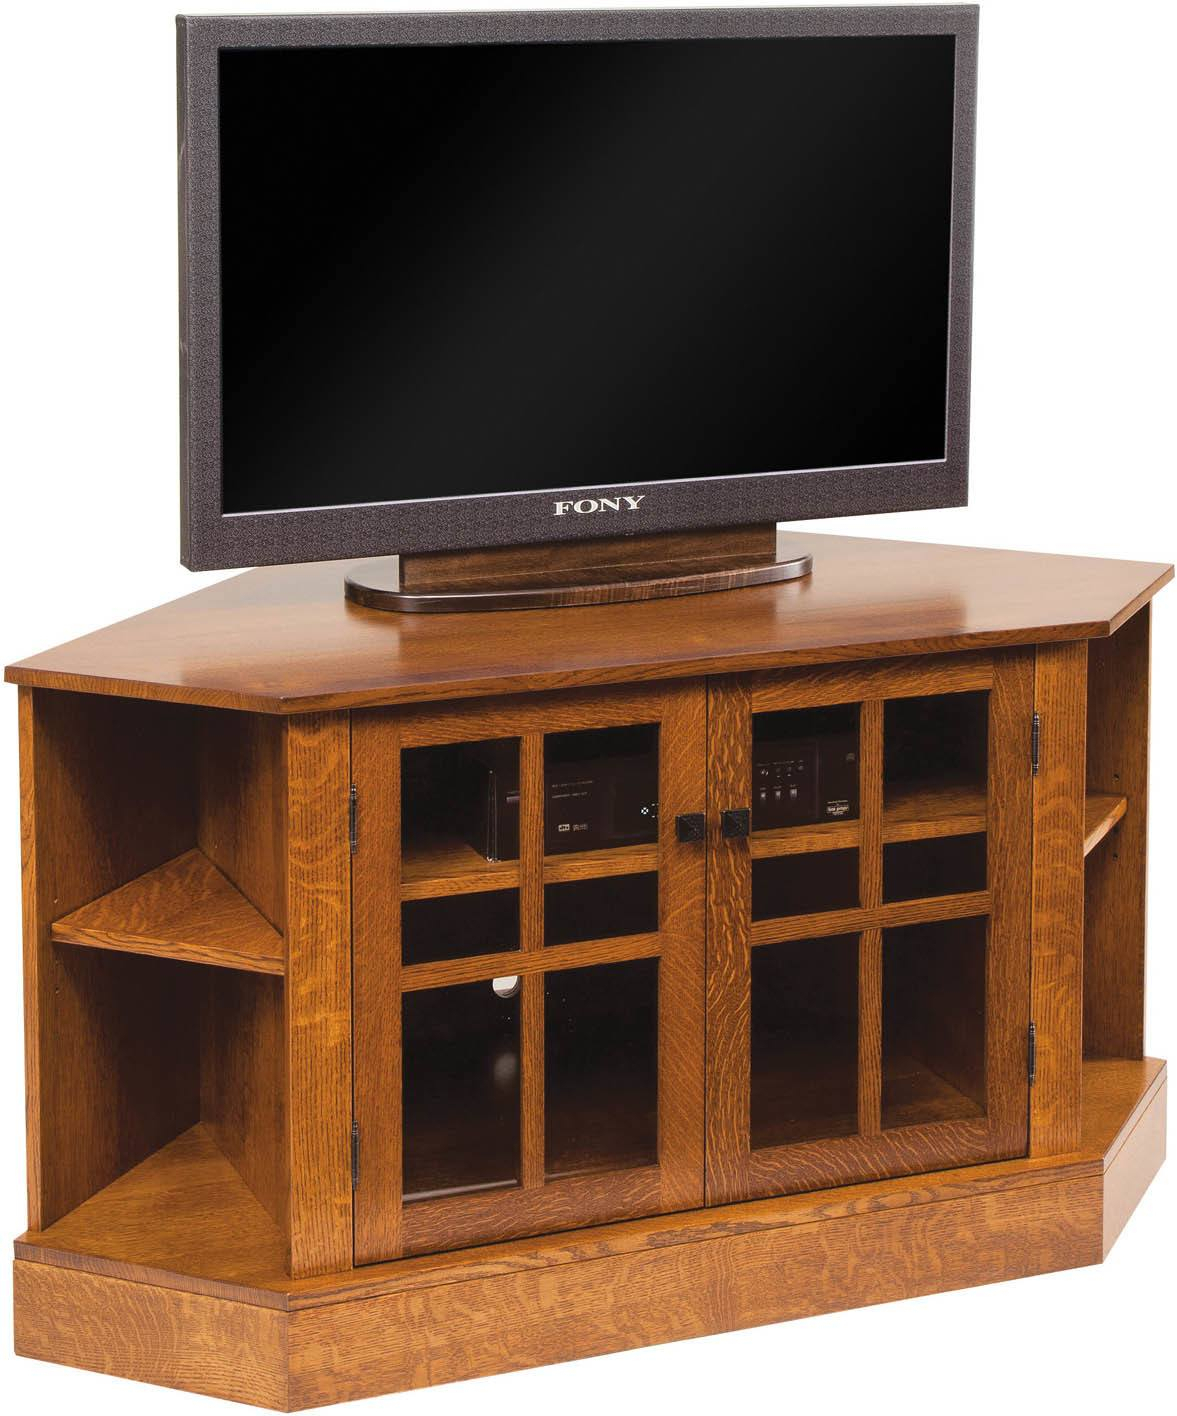 Corner Tv Cabinets And Stands | Brandenberry Amish Furniture Inside Corner Tv Cabinet With Hutch (View 7 of 15)